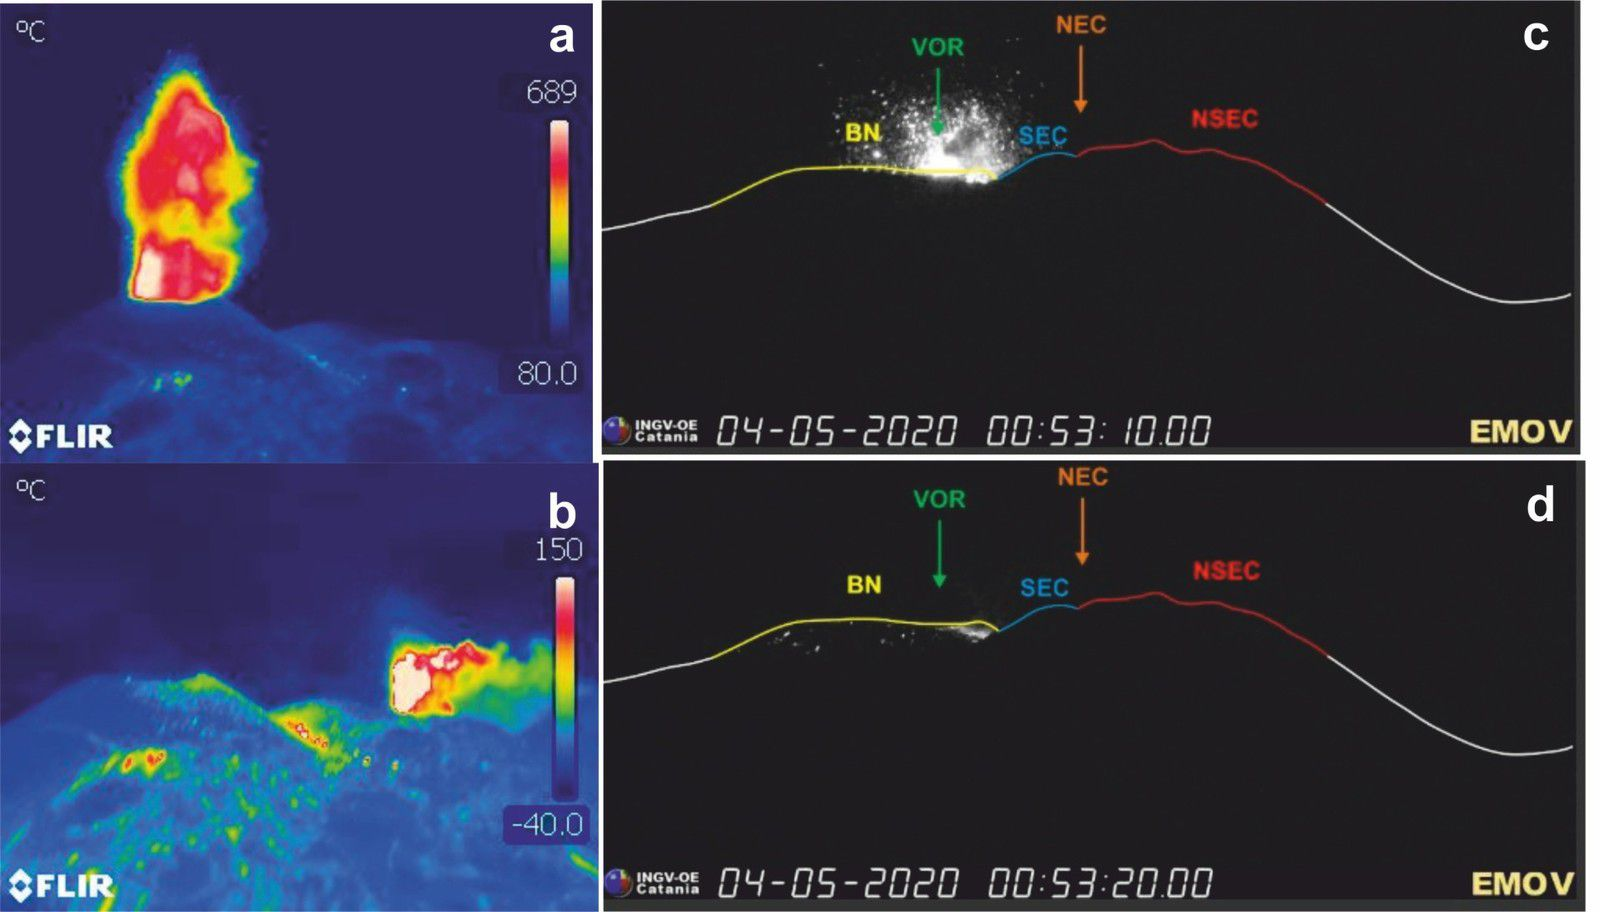 Etna - Thermal images of strombolian activity at the VOR crater from the a) main cone formed on 12/09/2019 and b) from the cone formed on 03/09/2020, photos during the inspection on 1 May (taken by F. Ciancitto). - Images of cameras visible from La Montagnola showing c) strong Strombolian activity in the VOR crater and d) the coarse products of the explosions which fall on the southern flank of the BN crater. - Doc. INGV OE